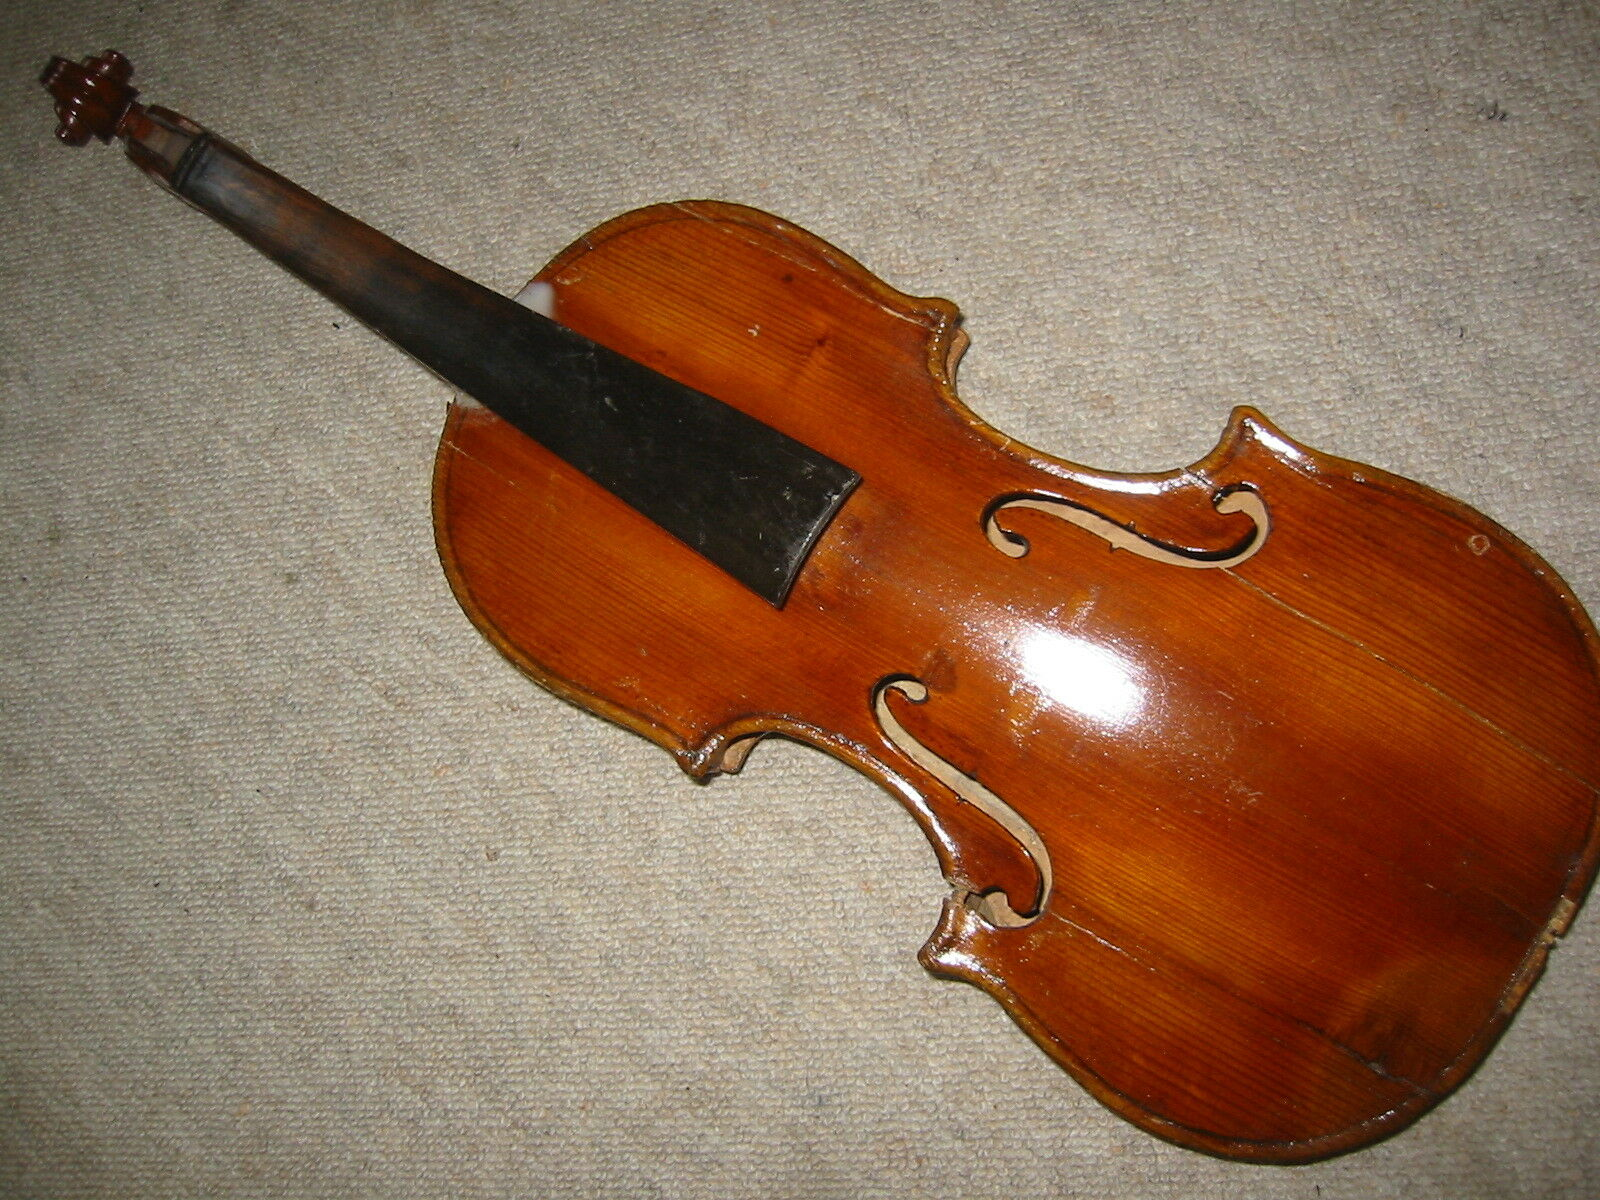 Interesting, old 4 4 Violin violon, nicely flamed  Angelus Soliani fecit Mutin